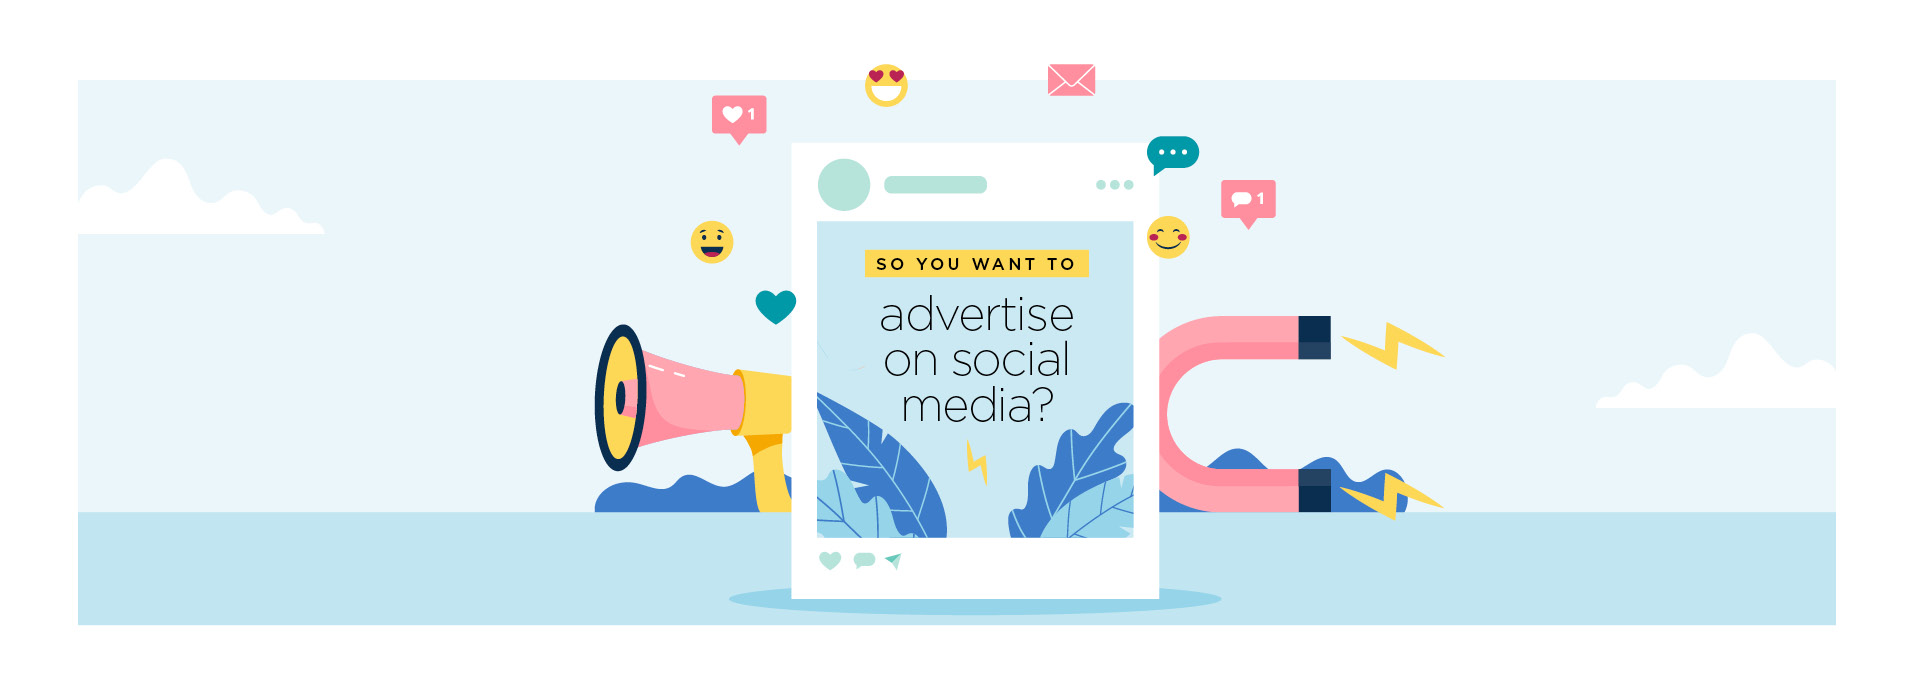 So you want to advertise on social media?